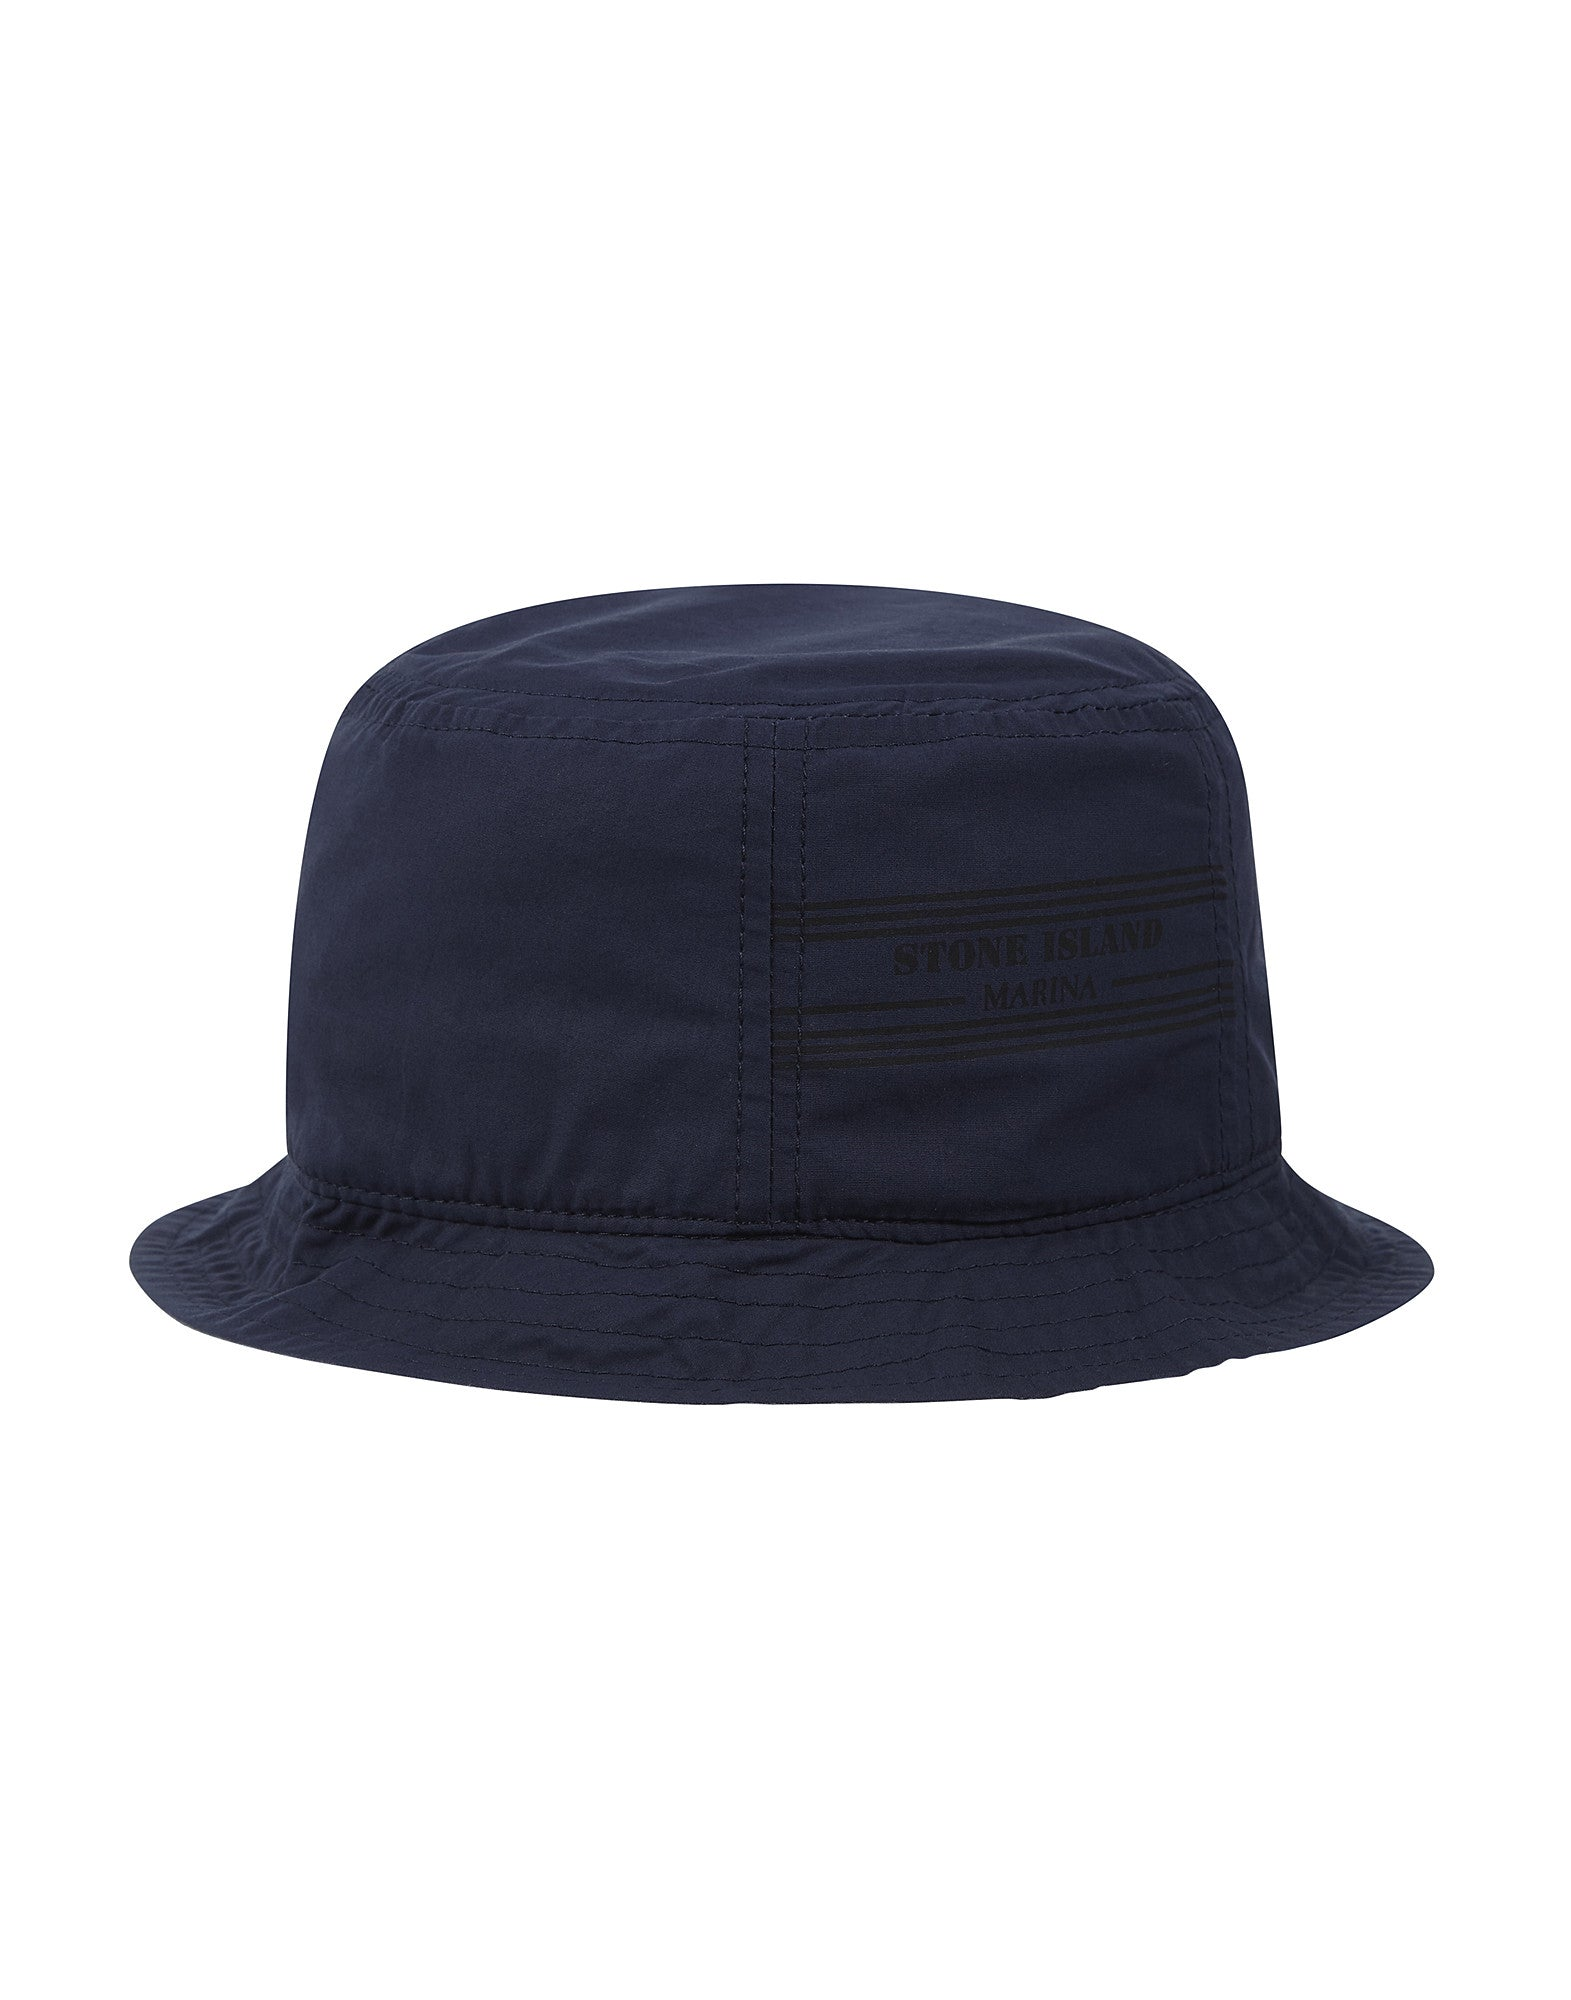 992XC STONE ISLAND MARINA Fisherman's Cap in Dark Blue